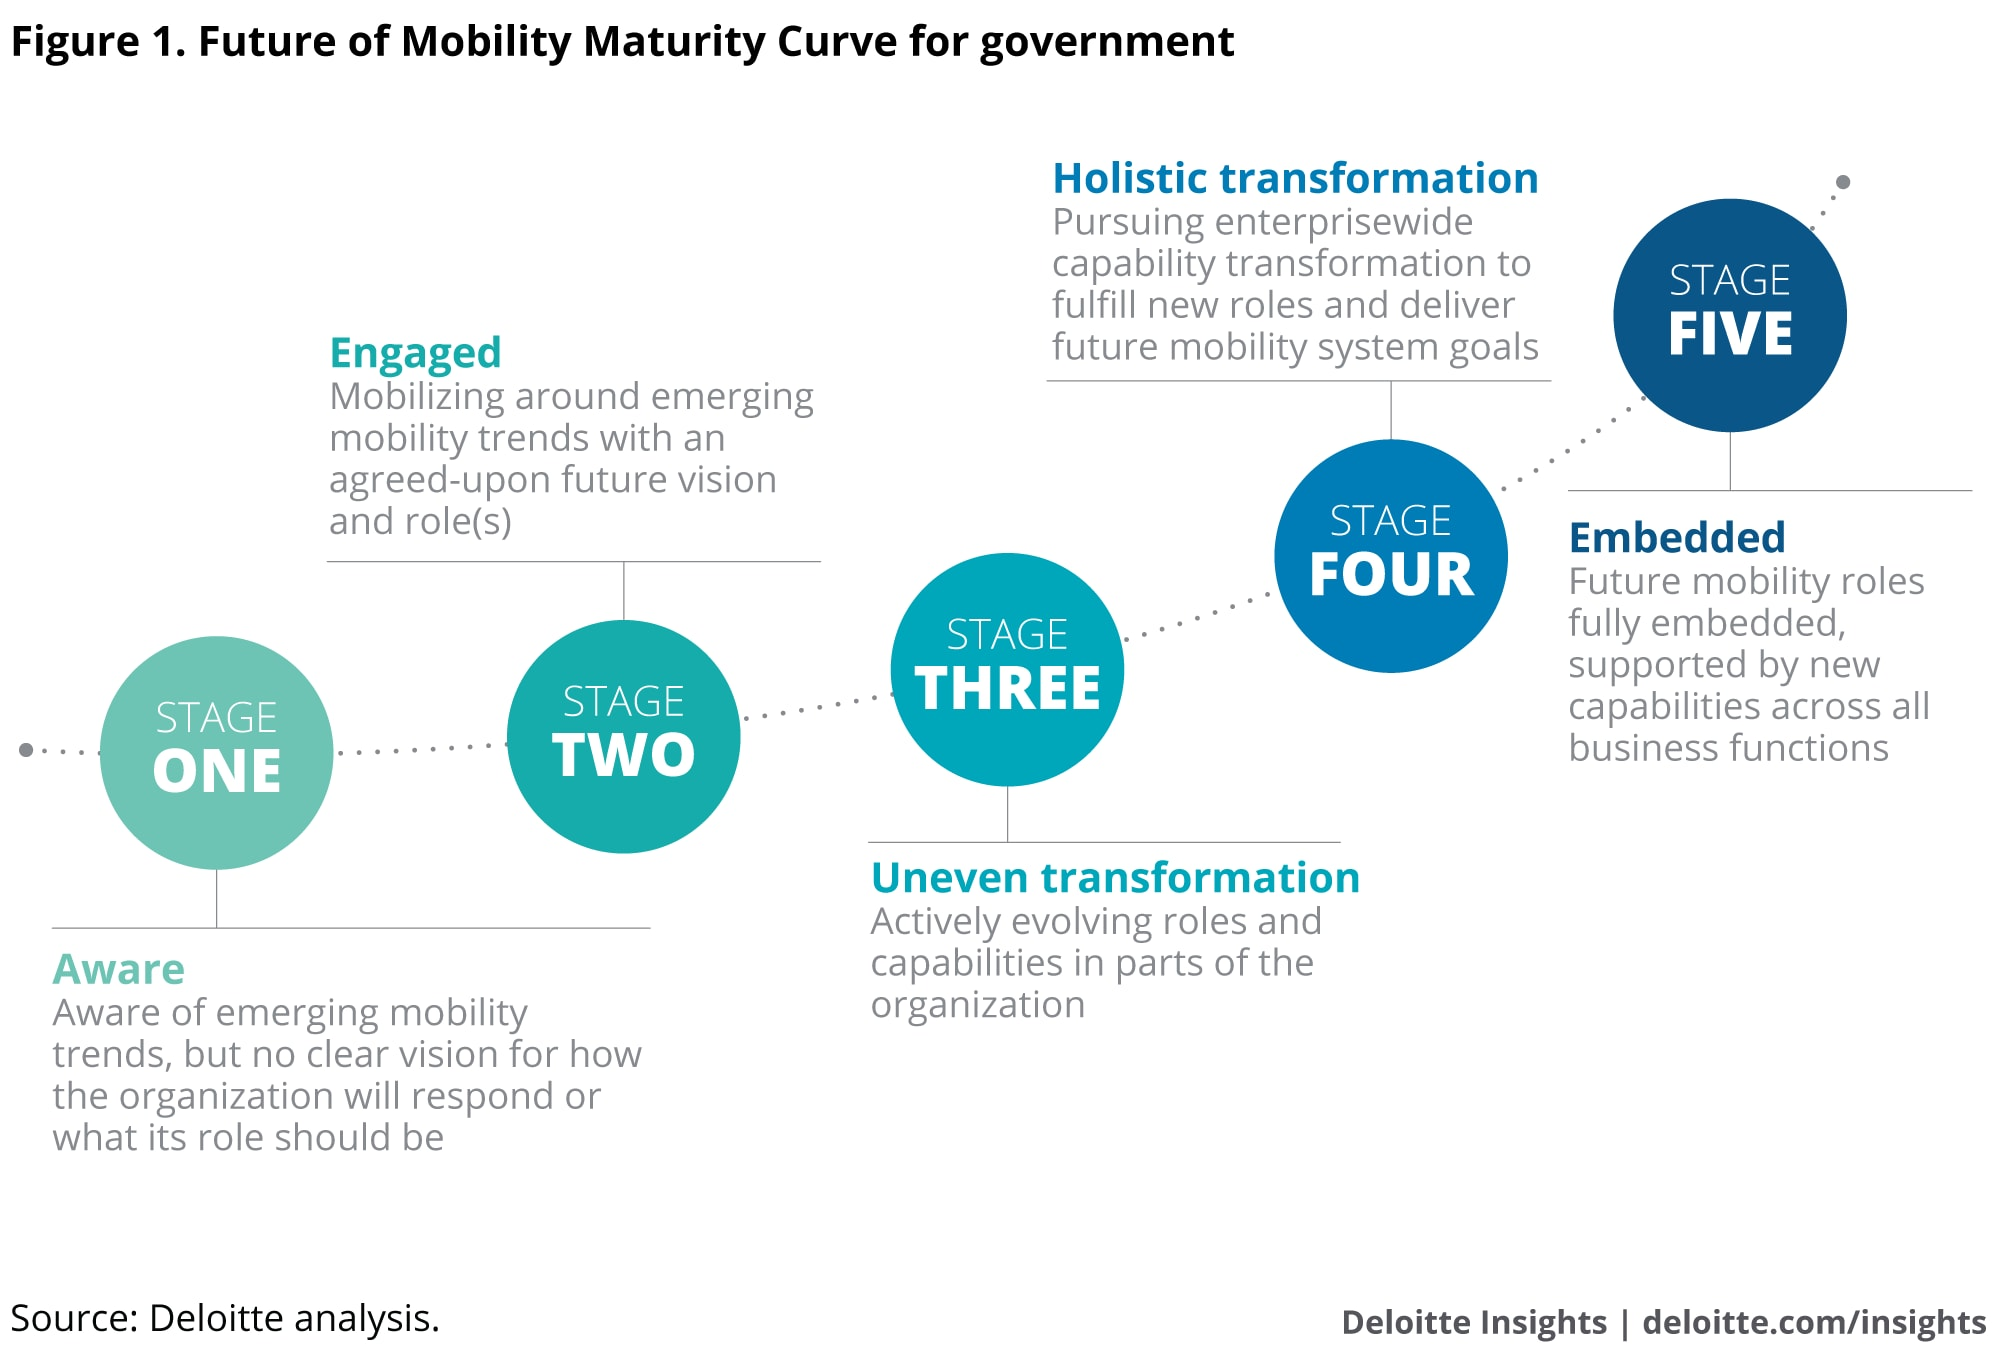 Future of Mobility Maturity Curve for Government